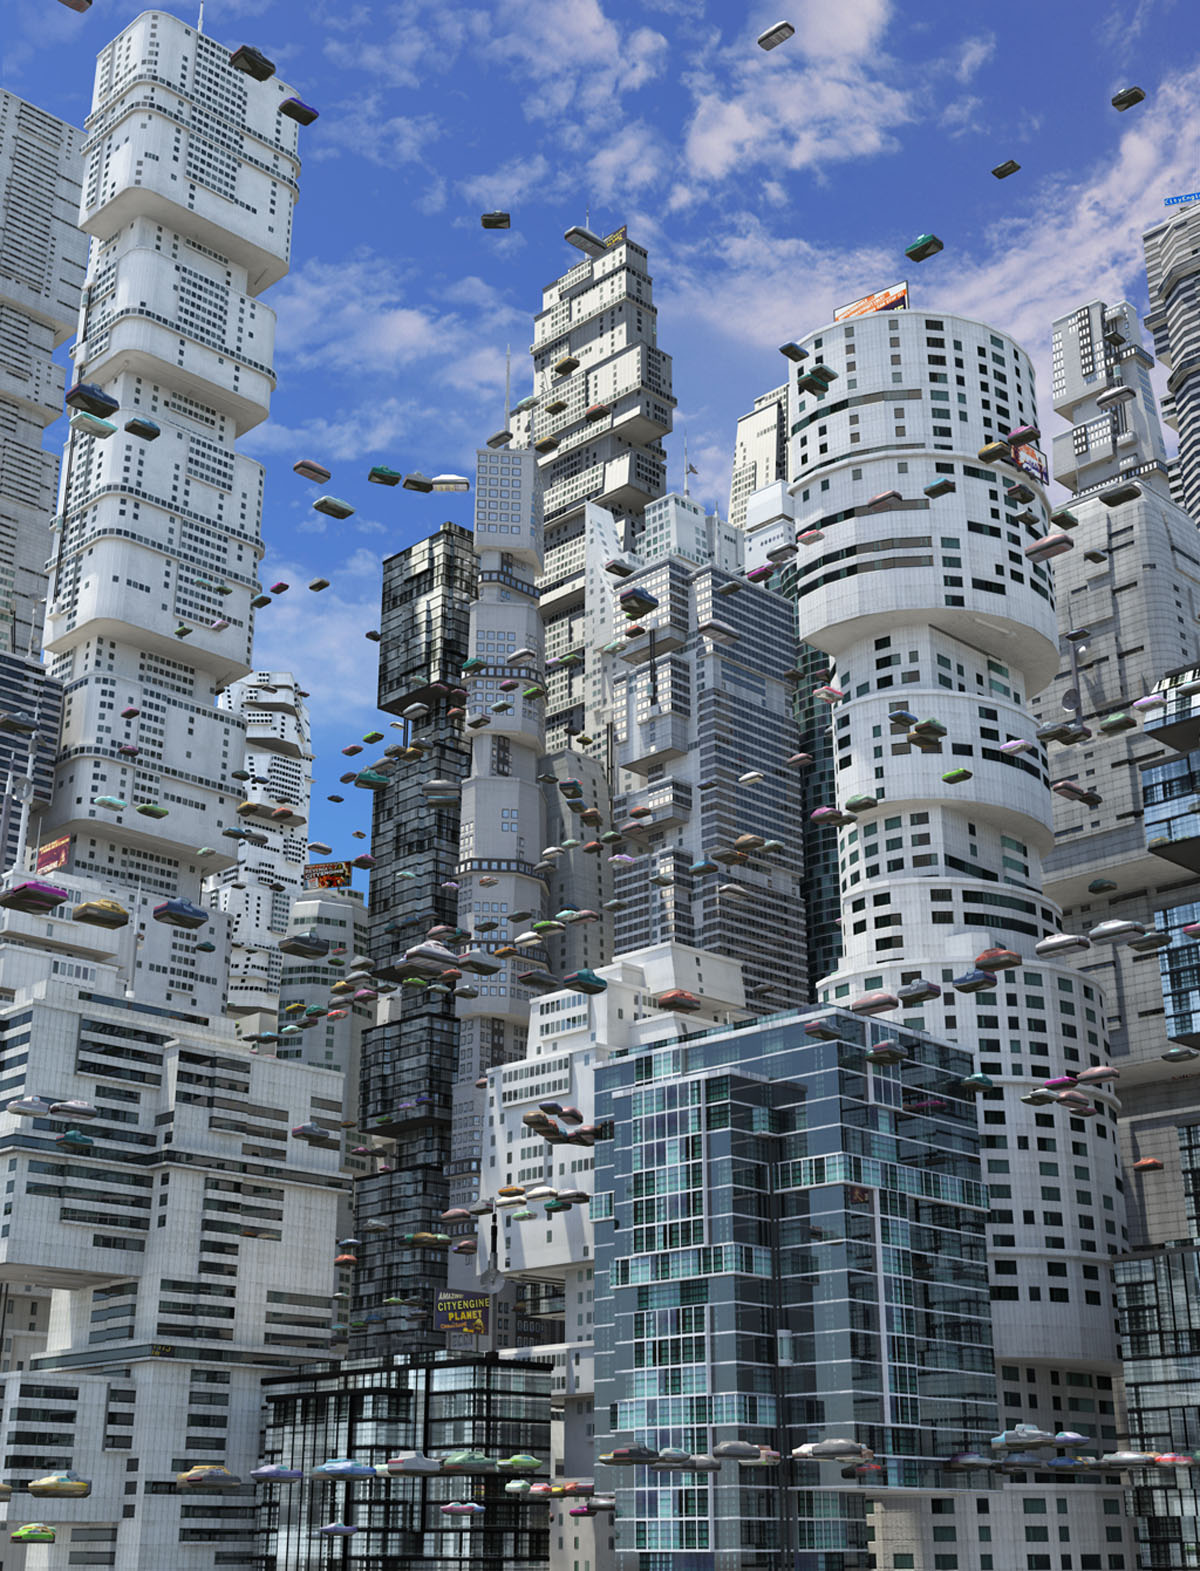 Create realistic-and futuristic-cityscapes with CityEngine 2013.